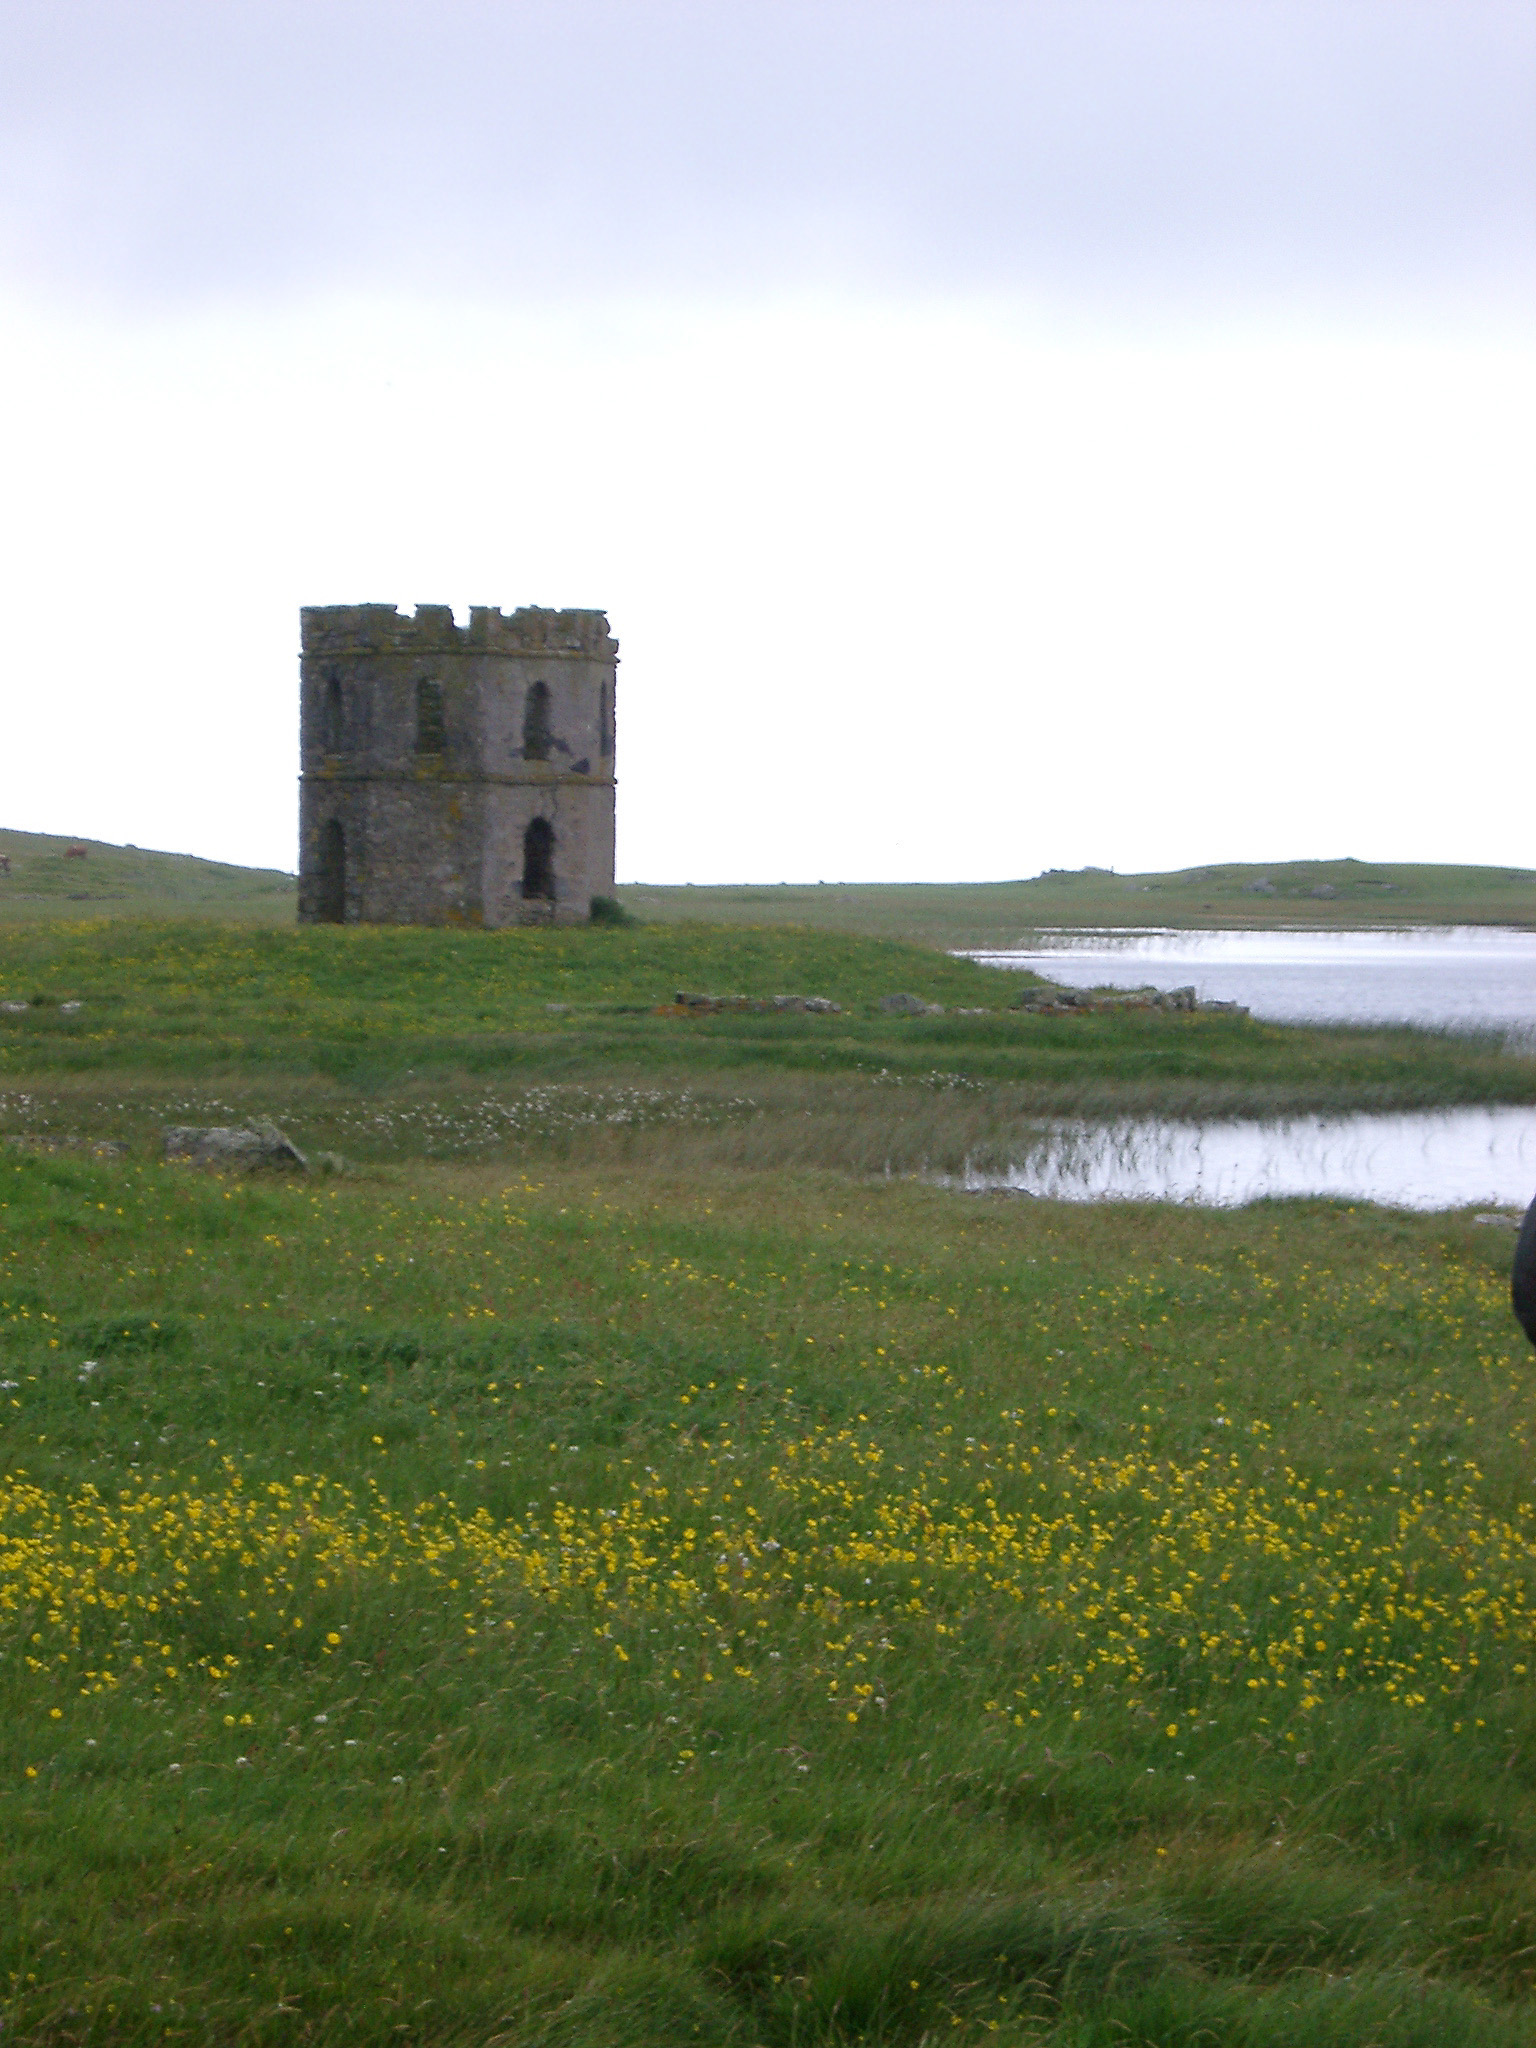 View of Scolpaig Tower on Loch Shoreline on Overcast Day, Outer Hebrides, Scotland